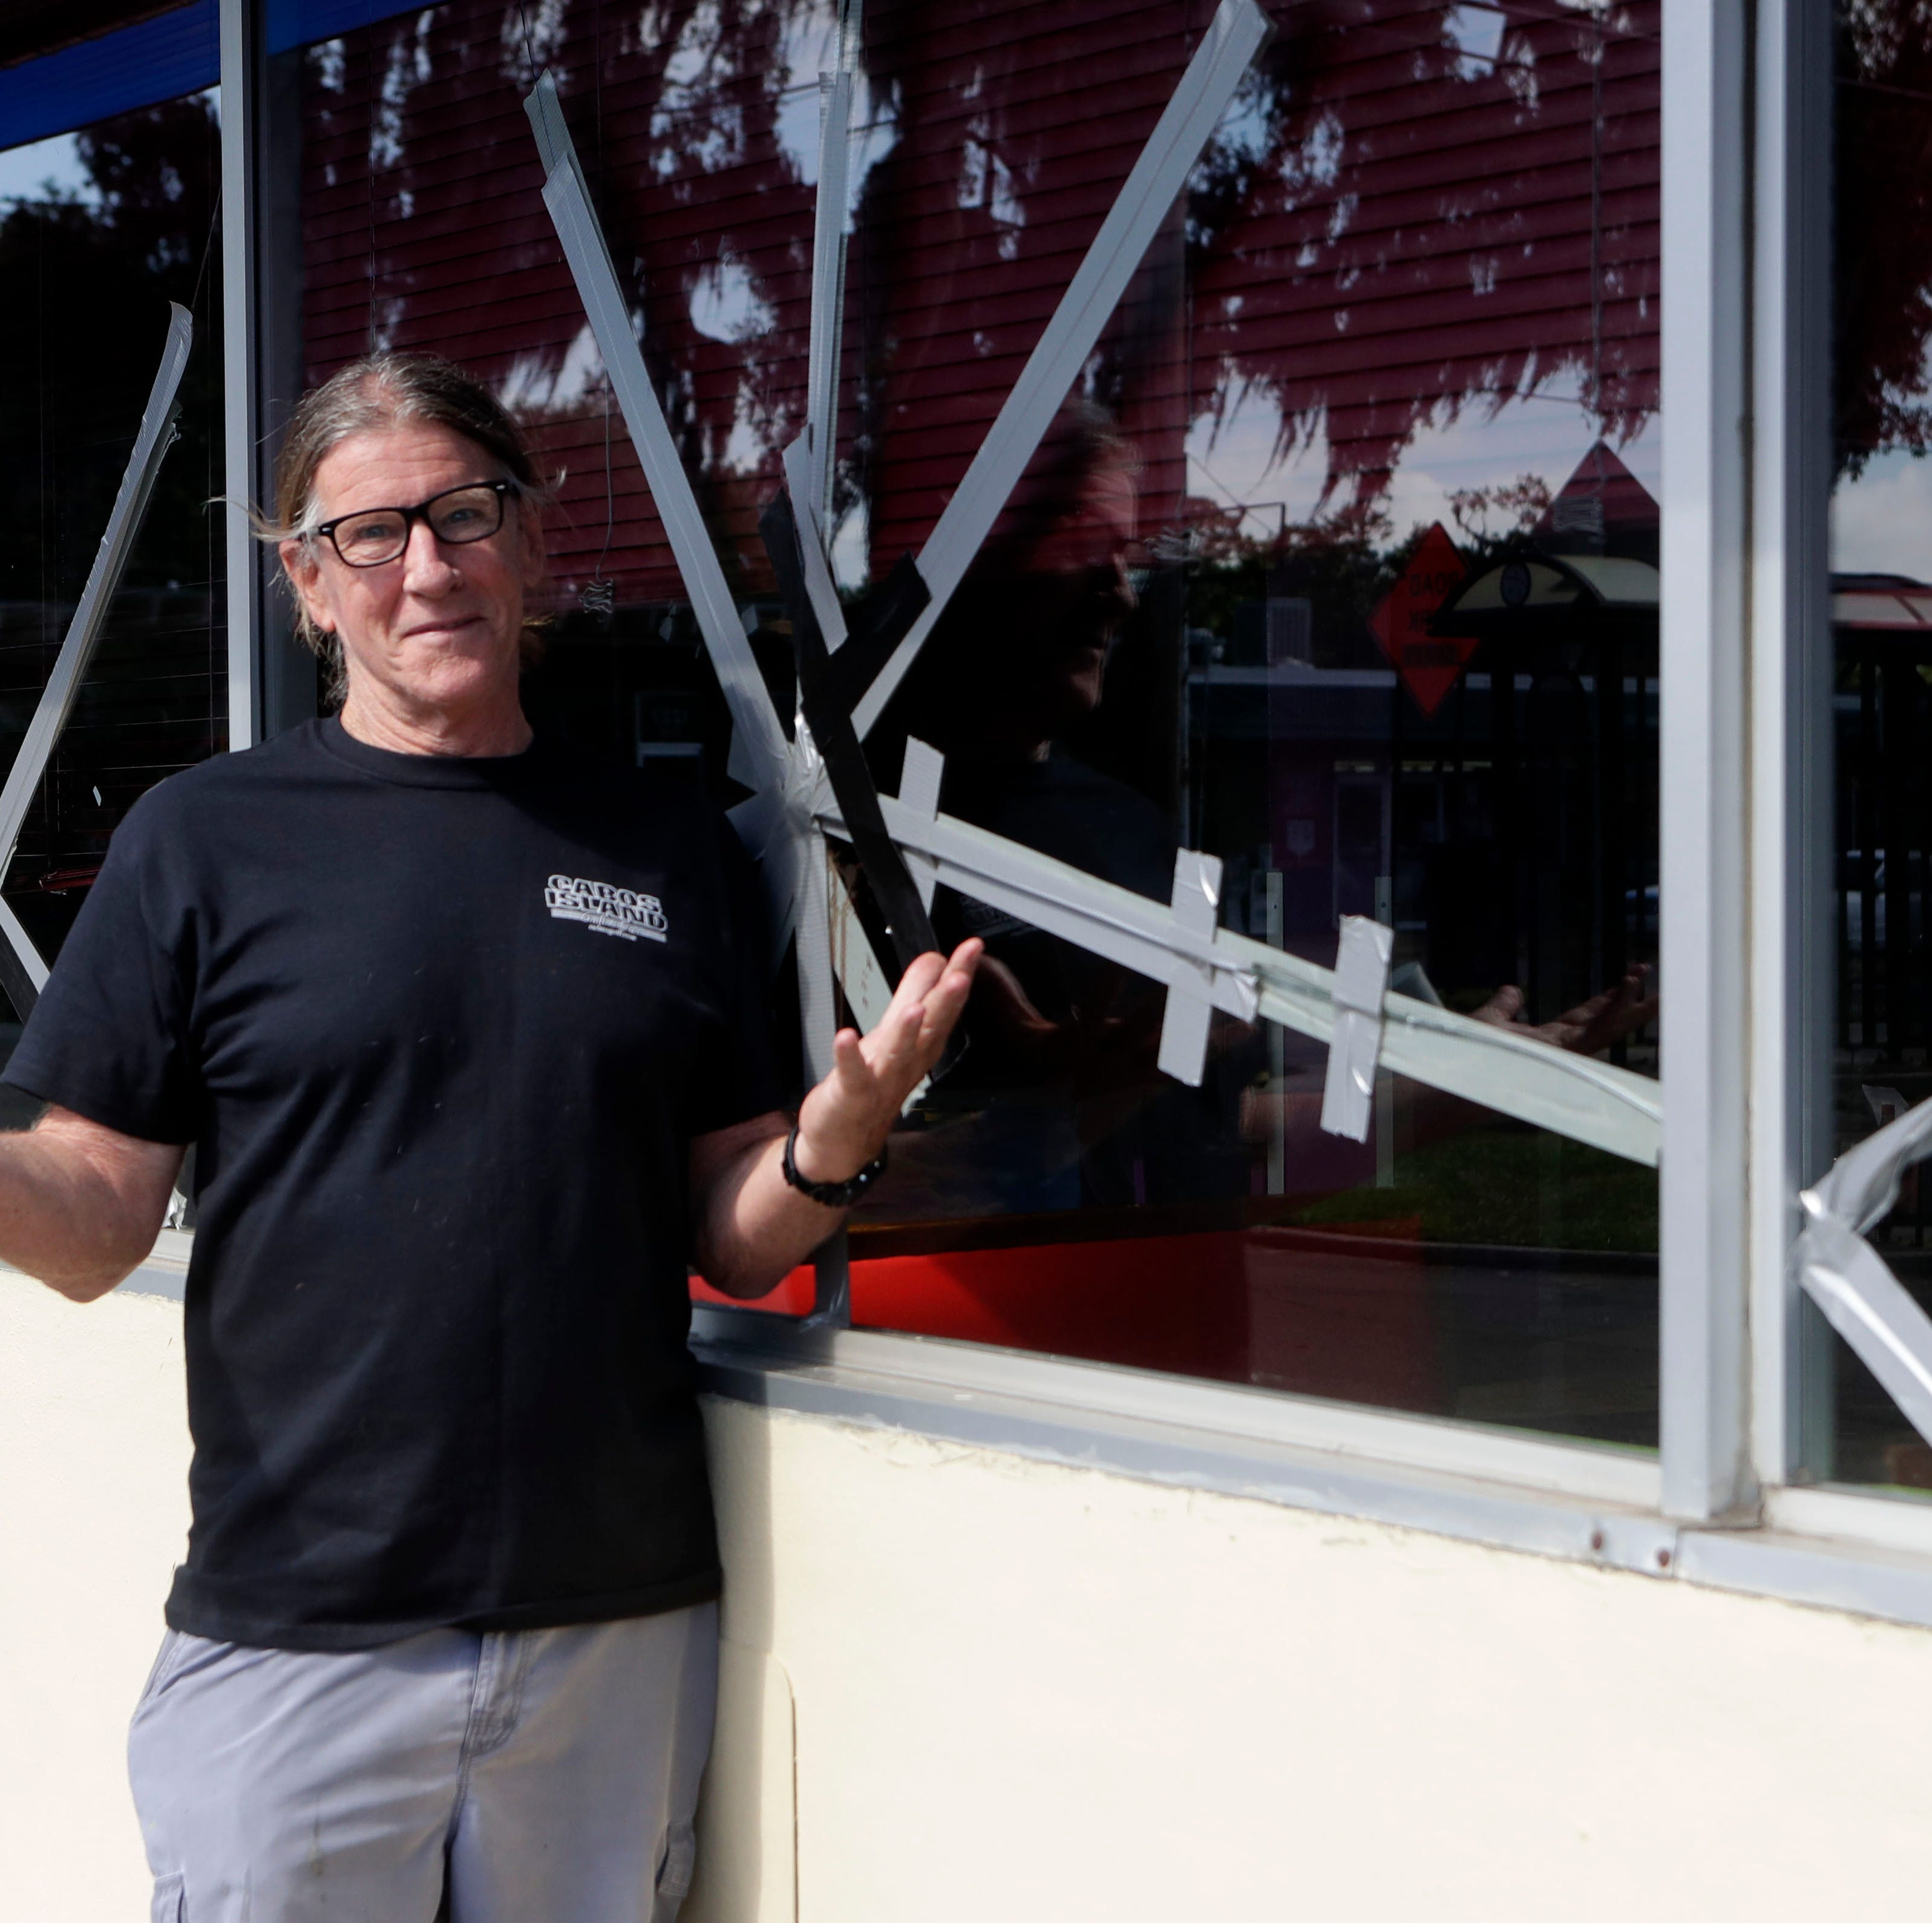 Man smashes windows at Cabo's restaurant, later apologizes